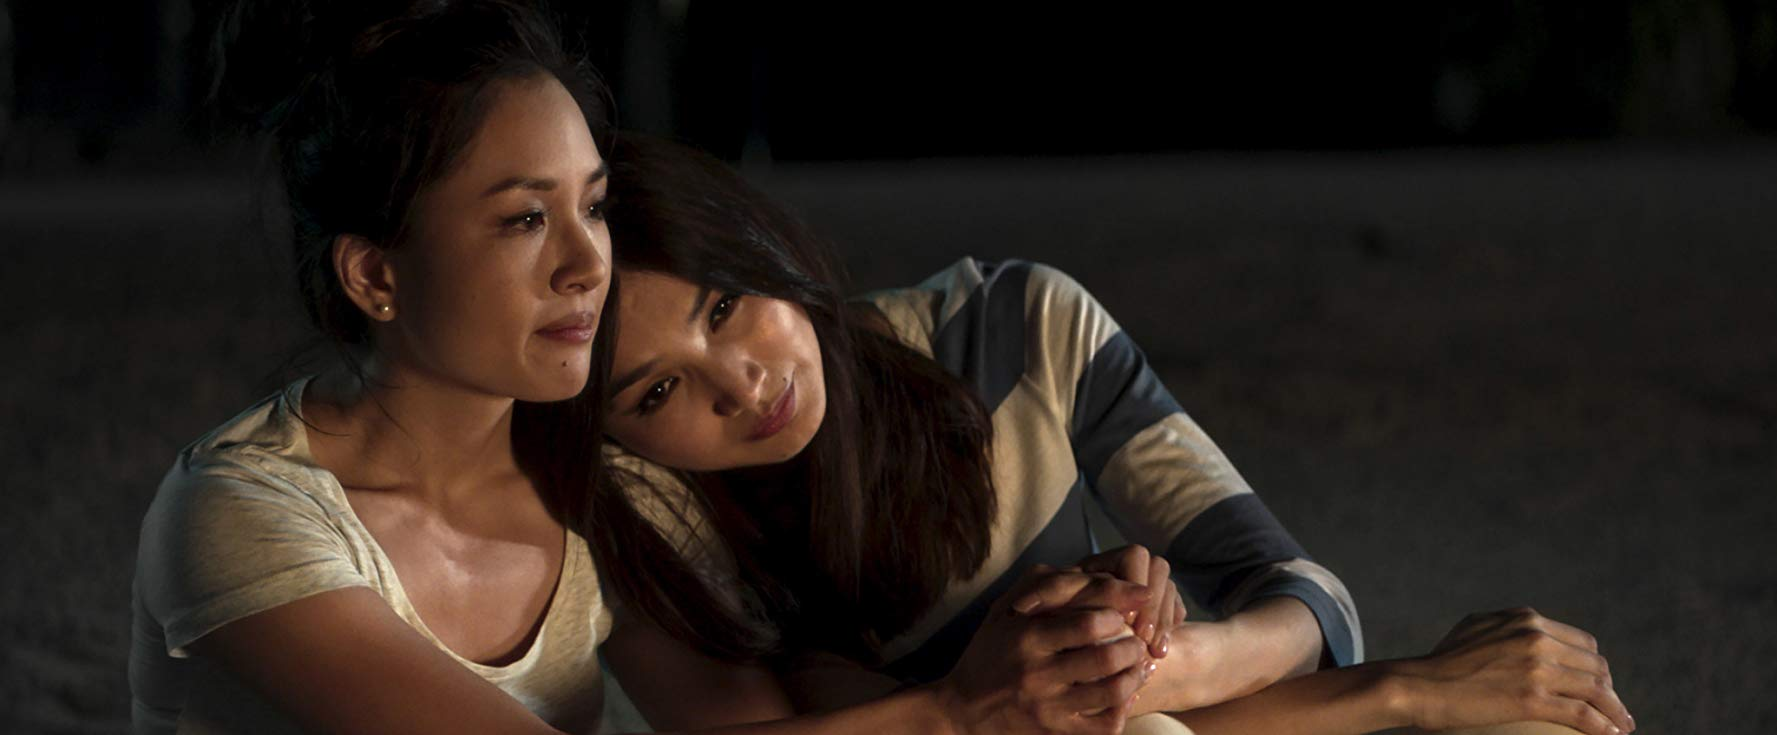 Constance Wu as Rachel and Gemma Chan as Astrid, in  Crazy Rich Asians